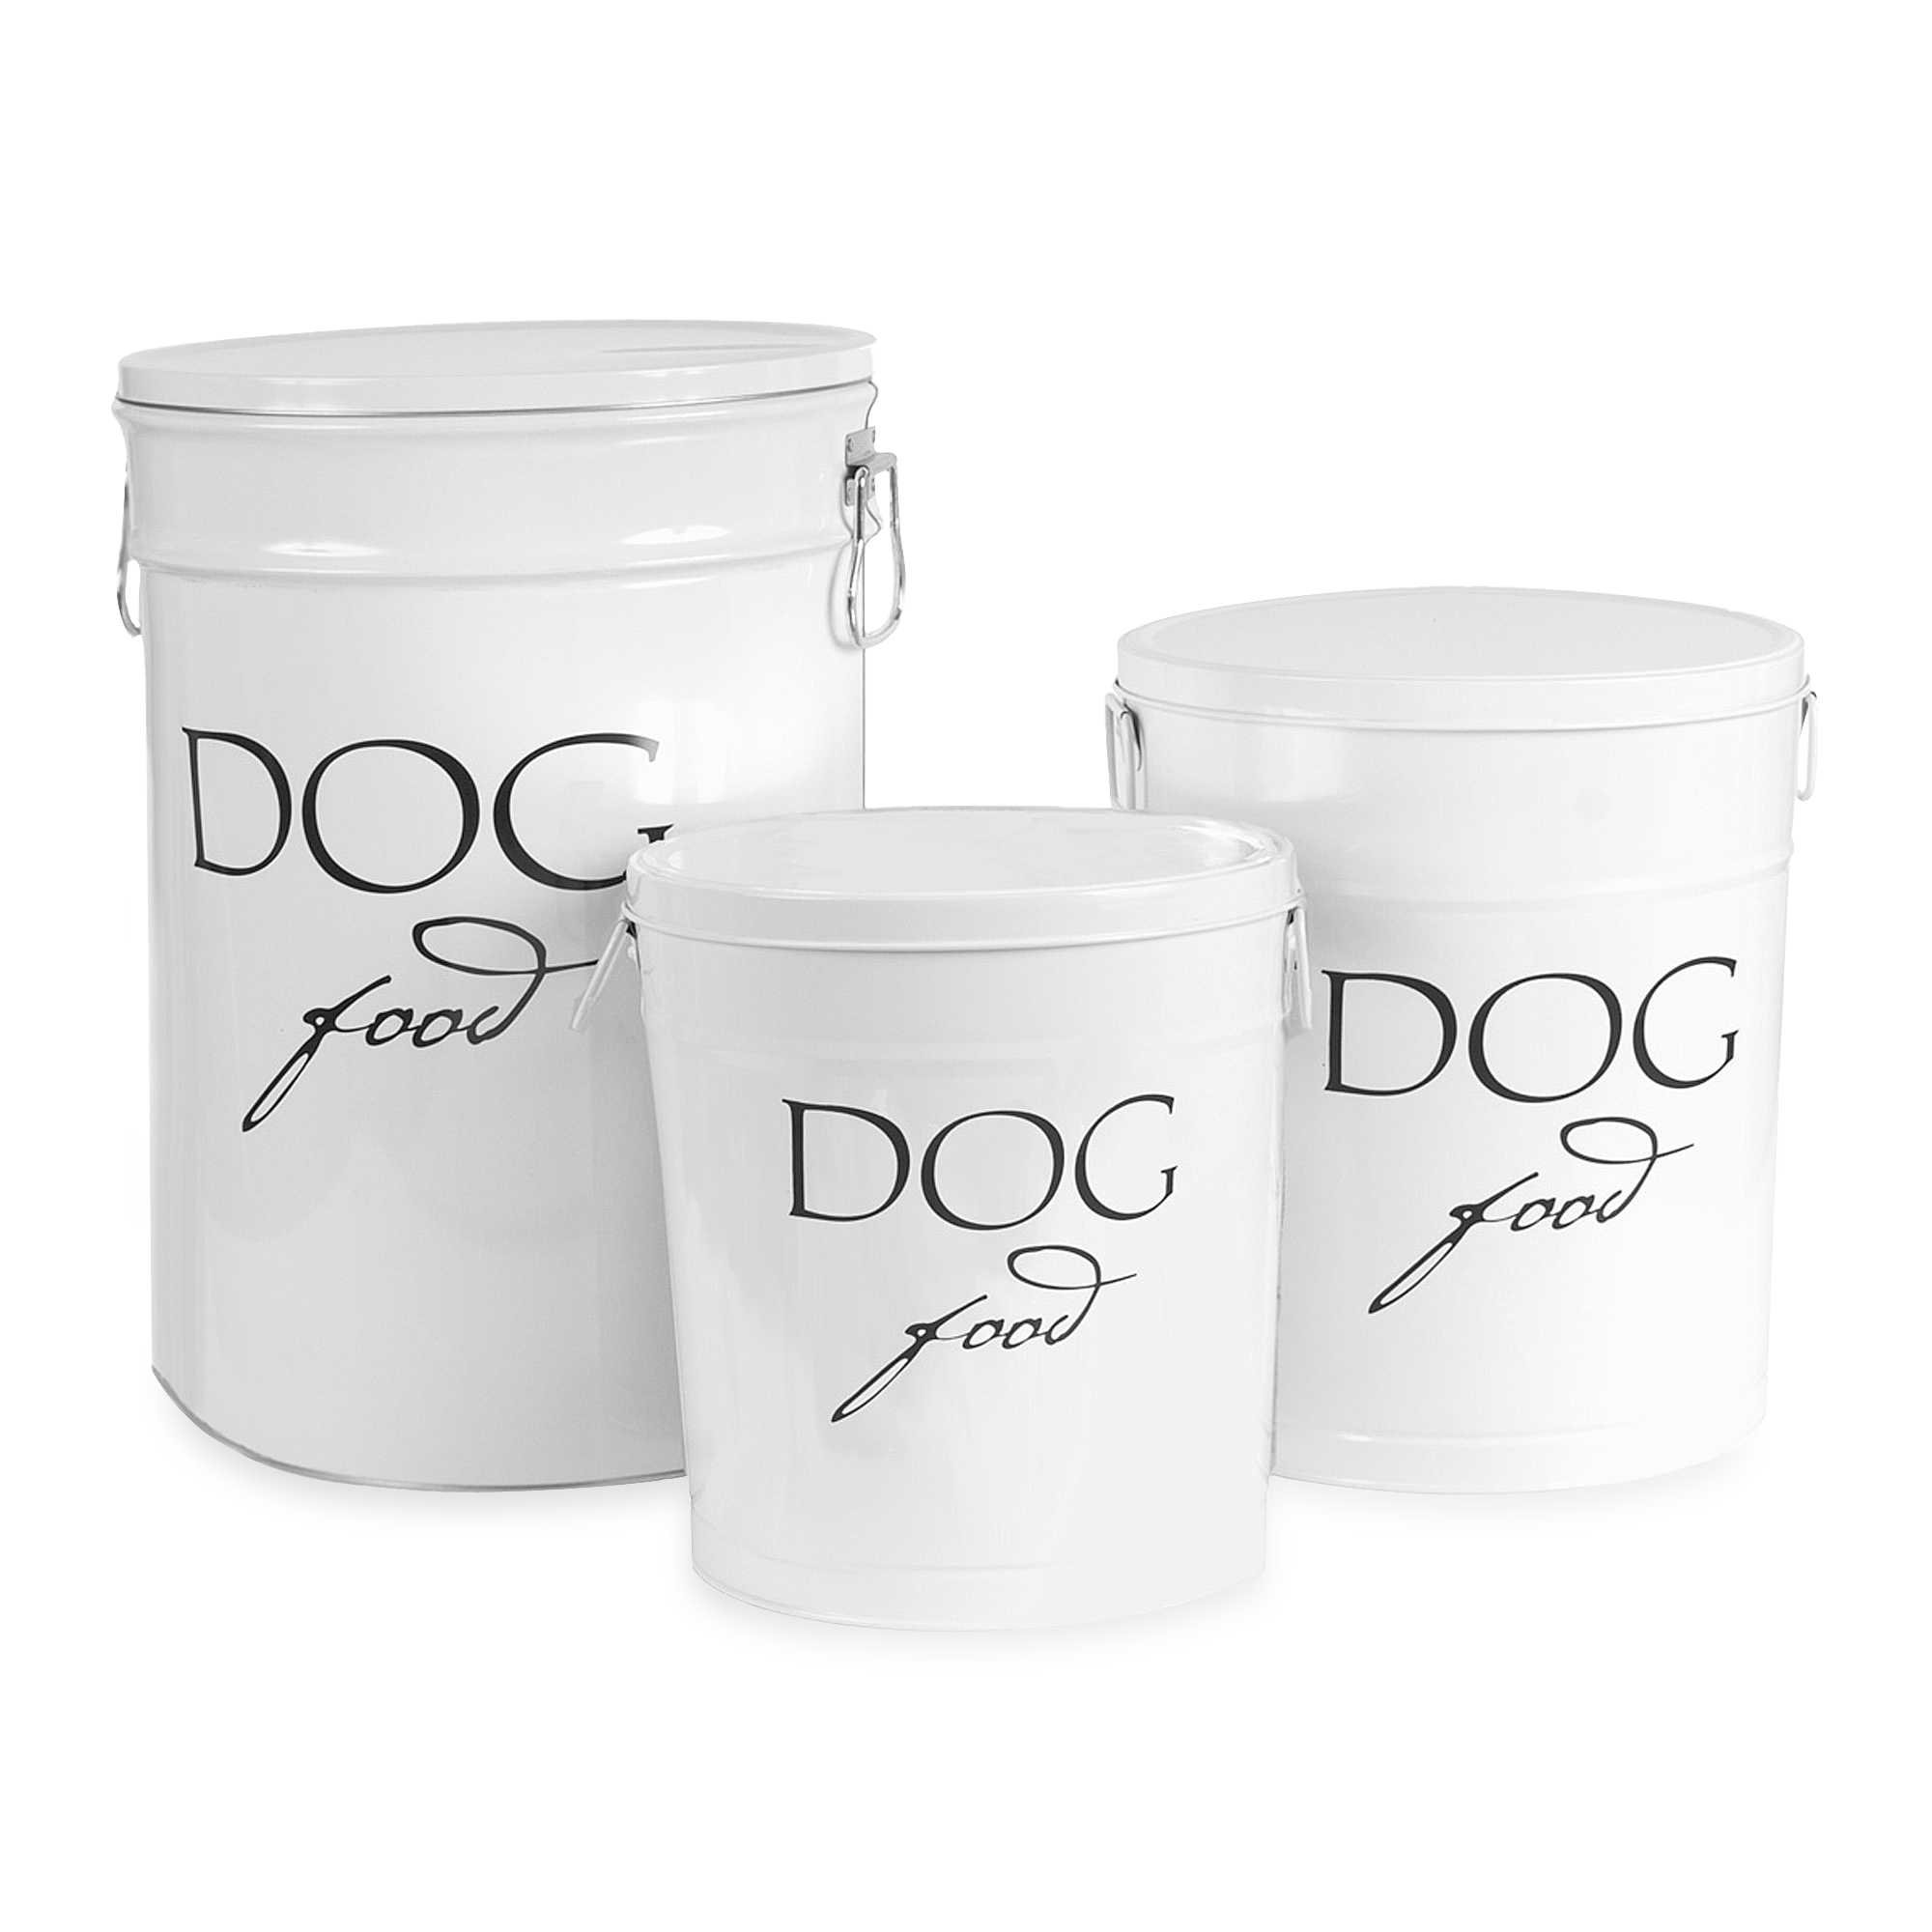 Harry Barker Small Dog Food Storage Canister in White